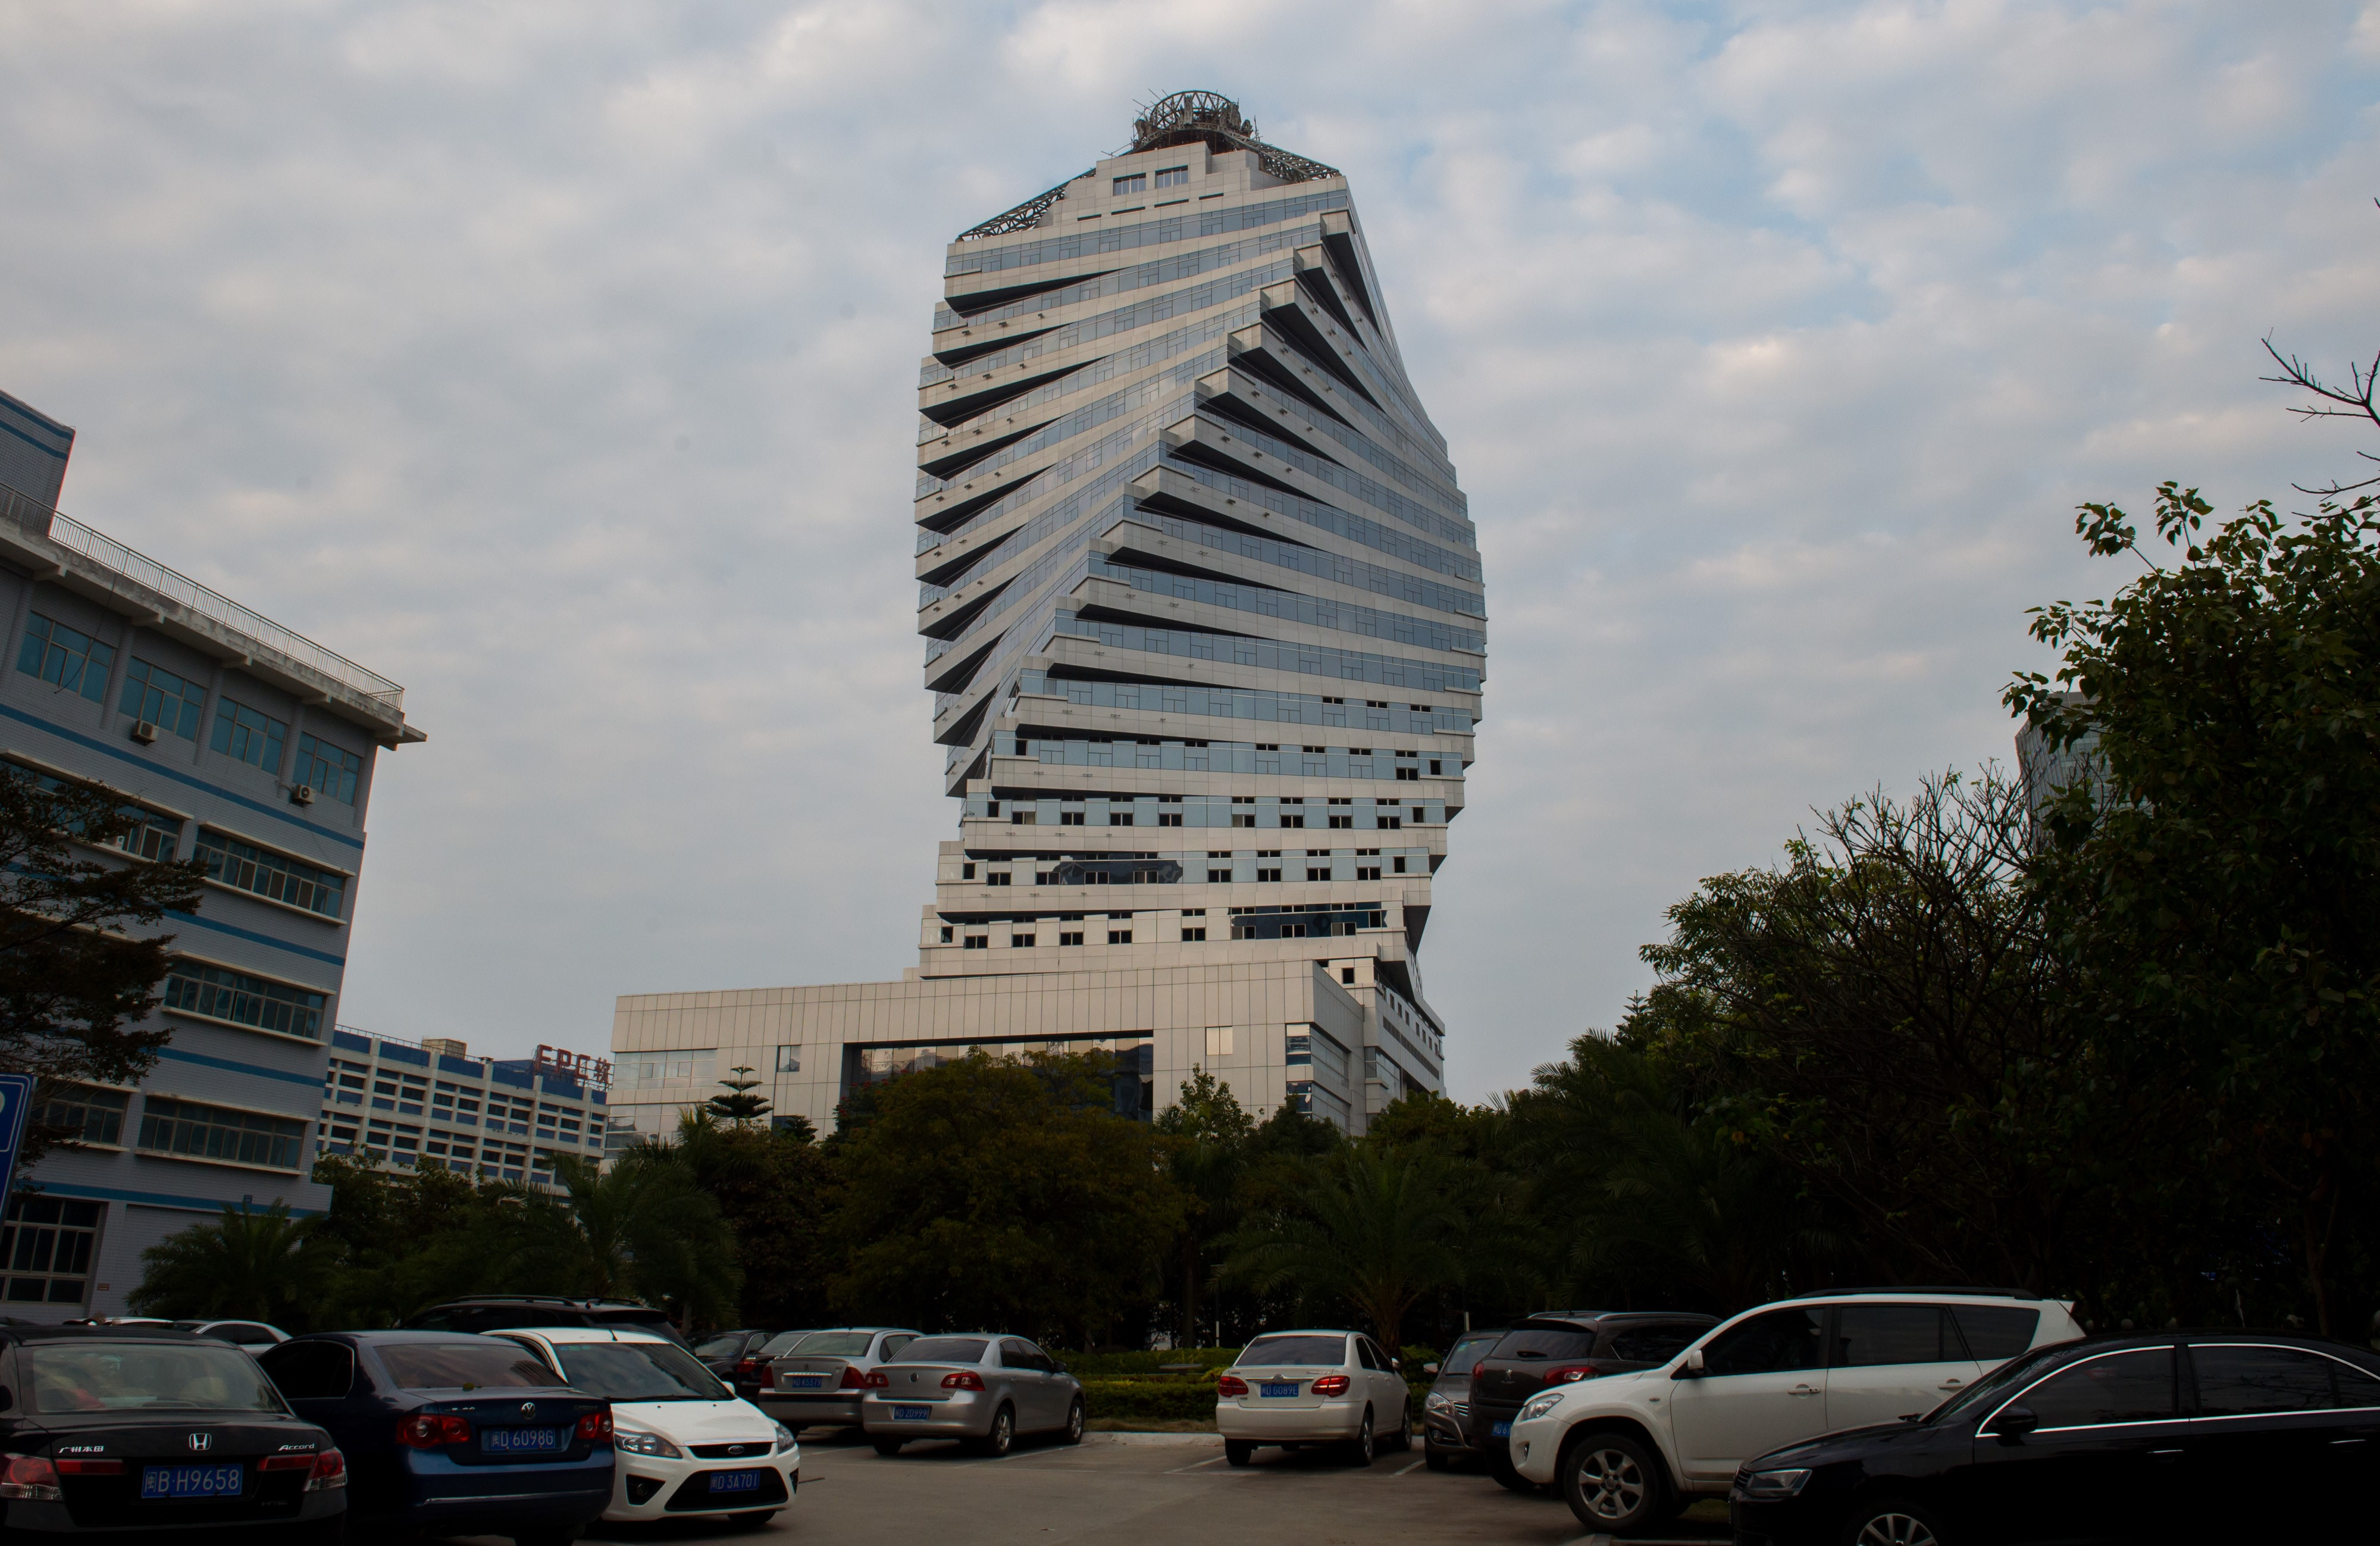 Slide 51 of 57: XIAMEN,CHINA - FEBRUARY 15 : Twisted shaped building of The Phase Two R&D center of Suiwa High Technology Electronic Industries Co, Ltd is seen in Xiamen, China's southeast Fujian province on February 15, 2016. The building shaped as DNA spiral. It is reported that the building high 99.7 meters with the 22-story high-rise, design unique, distorted straight, is currently in the under construction state. Citizens called it 'twisted building'. (Photo by Zhong Zhenbin/Anadolu Agency/Getty Images)